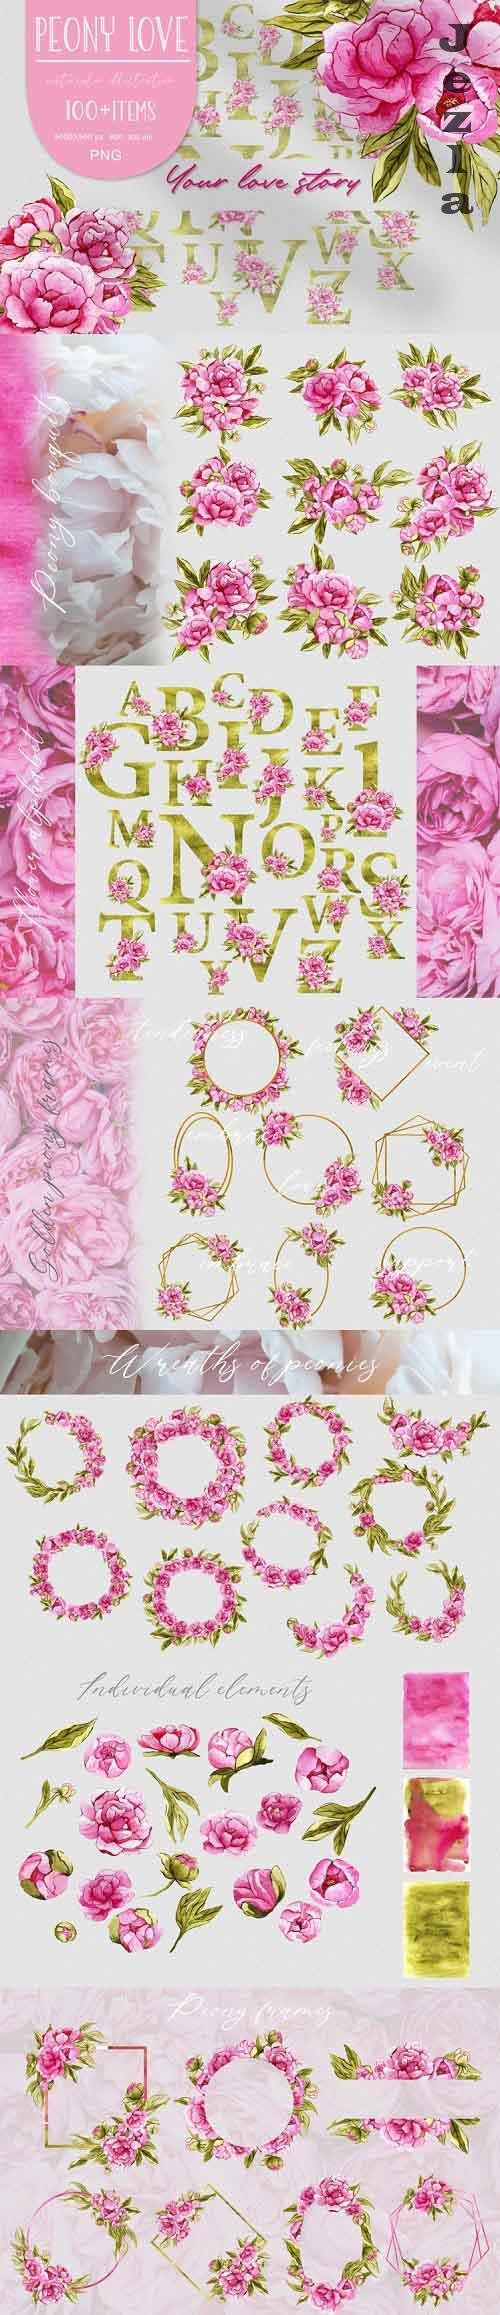 Watercolor floral set pink peony PNG - 974310